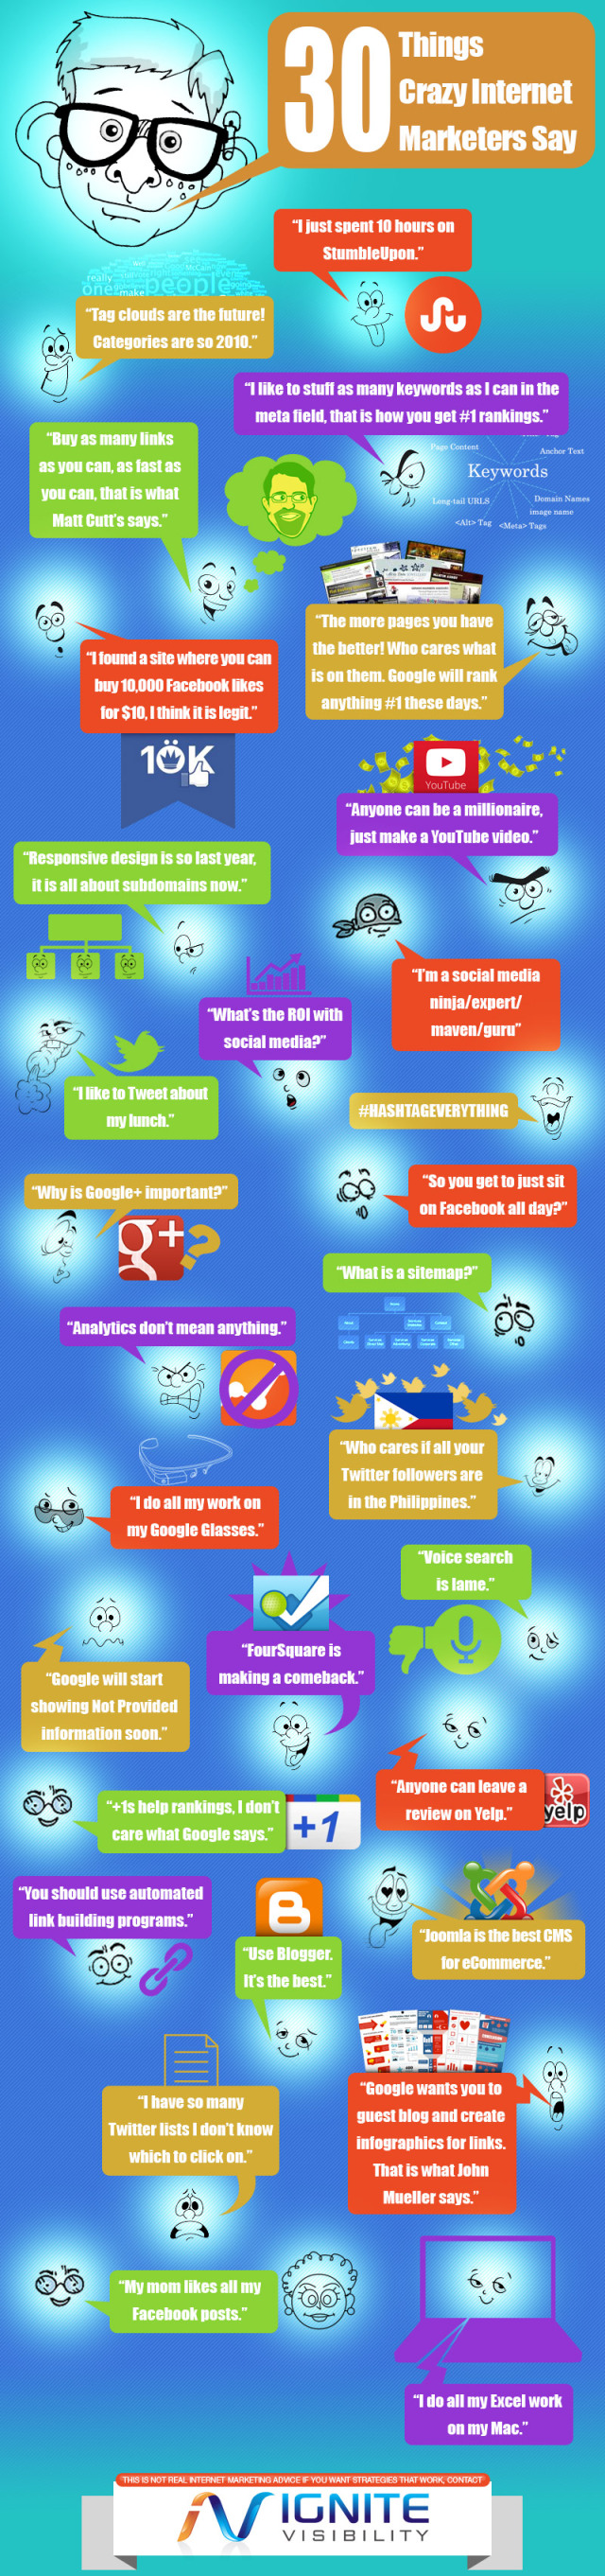 30 things crazy internet marketers say